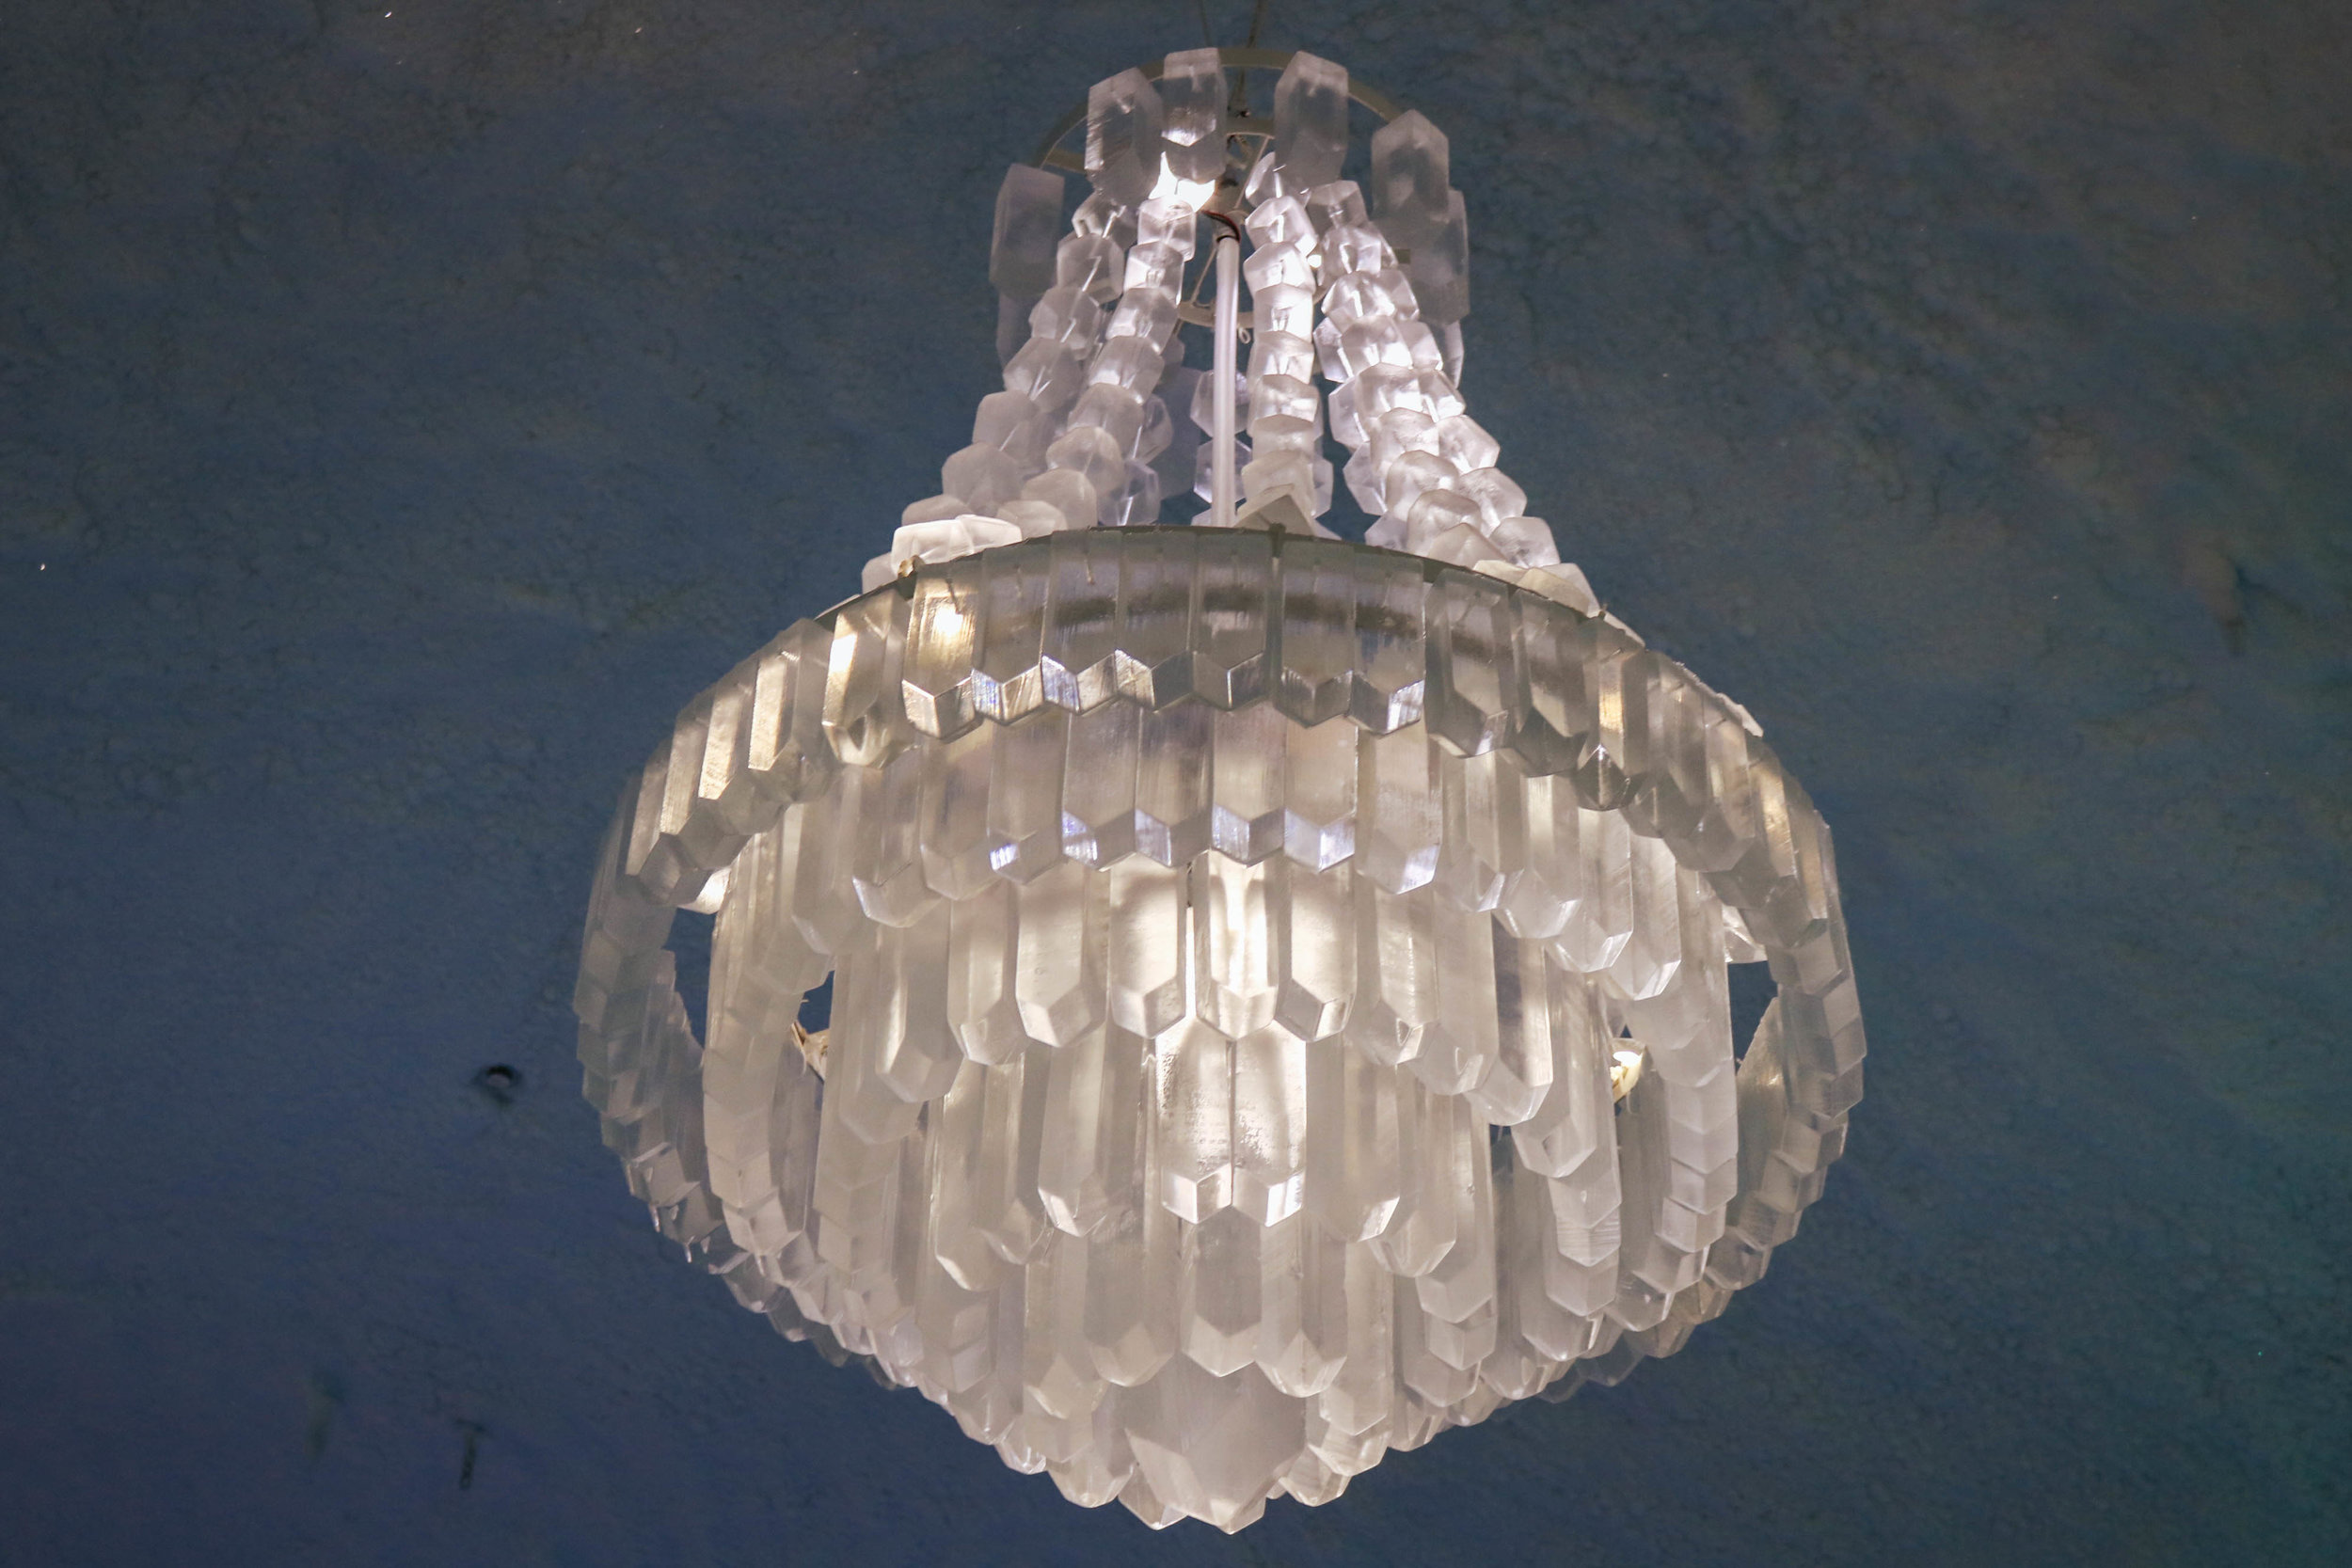 ... and the ice chandelier, which is the highlight of the interior of the hotel!